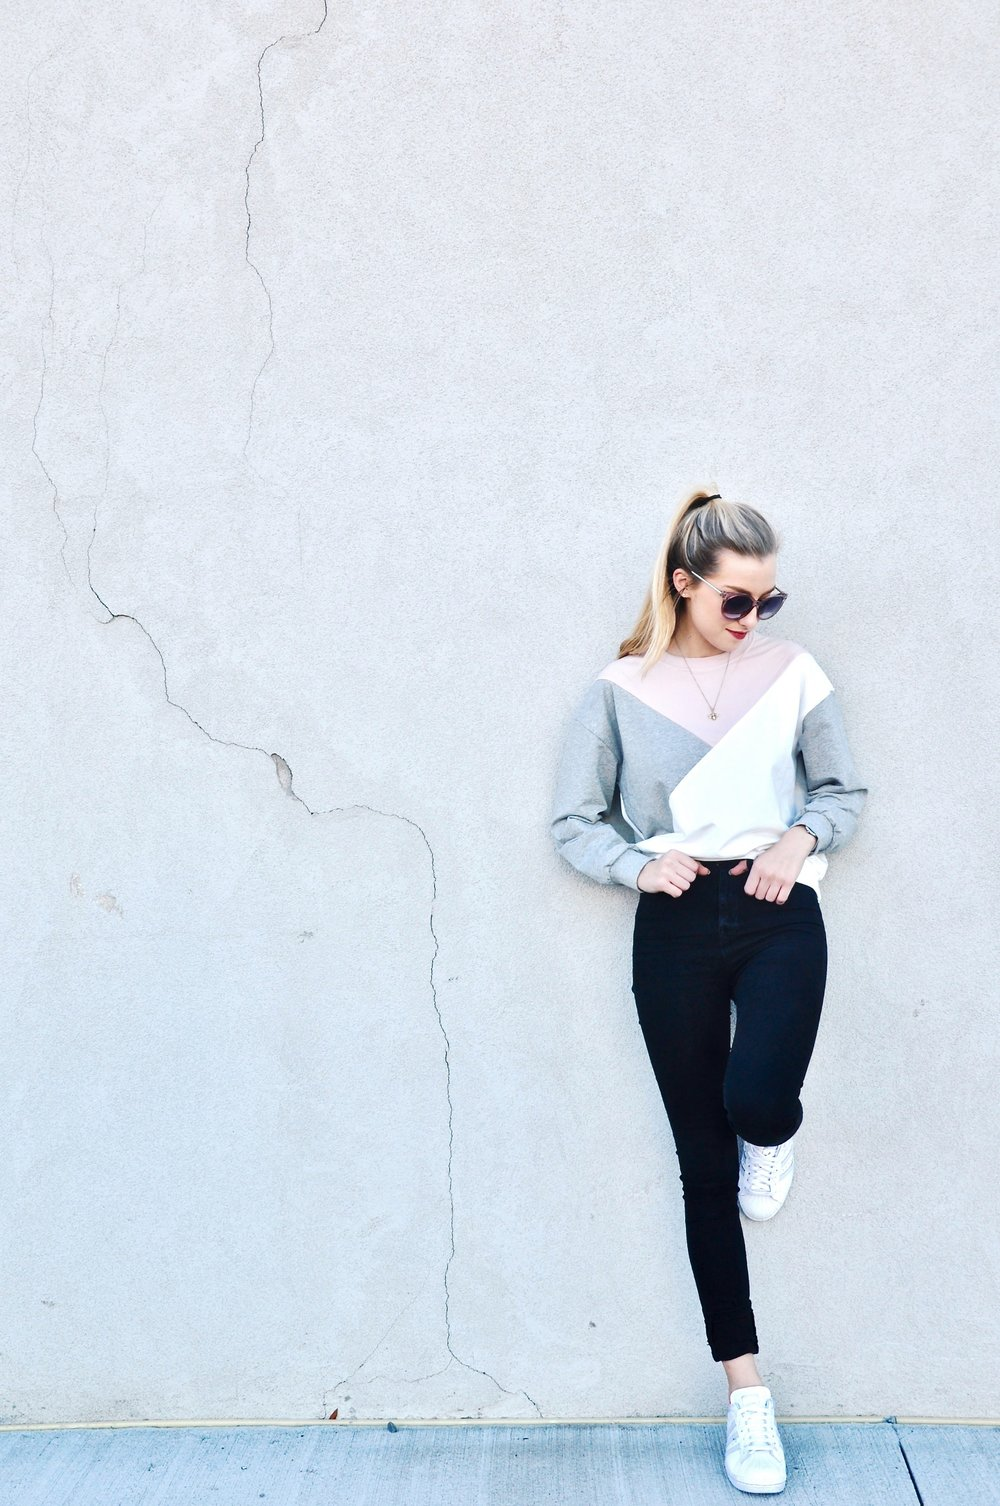 Sweatshirt: Romwe, Watch: Mockberg, Sunglasses: Ann Taylor, Jeans: BDG Urban Outfitters, Shoes: Adidas Custom Superstars